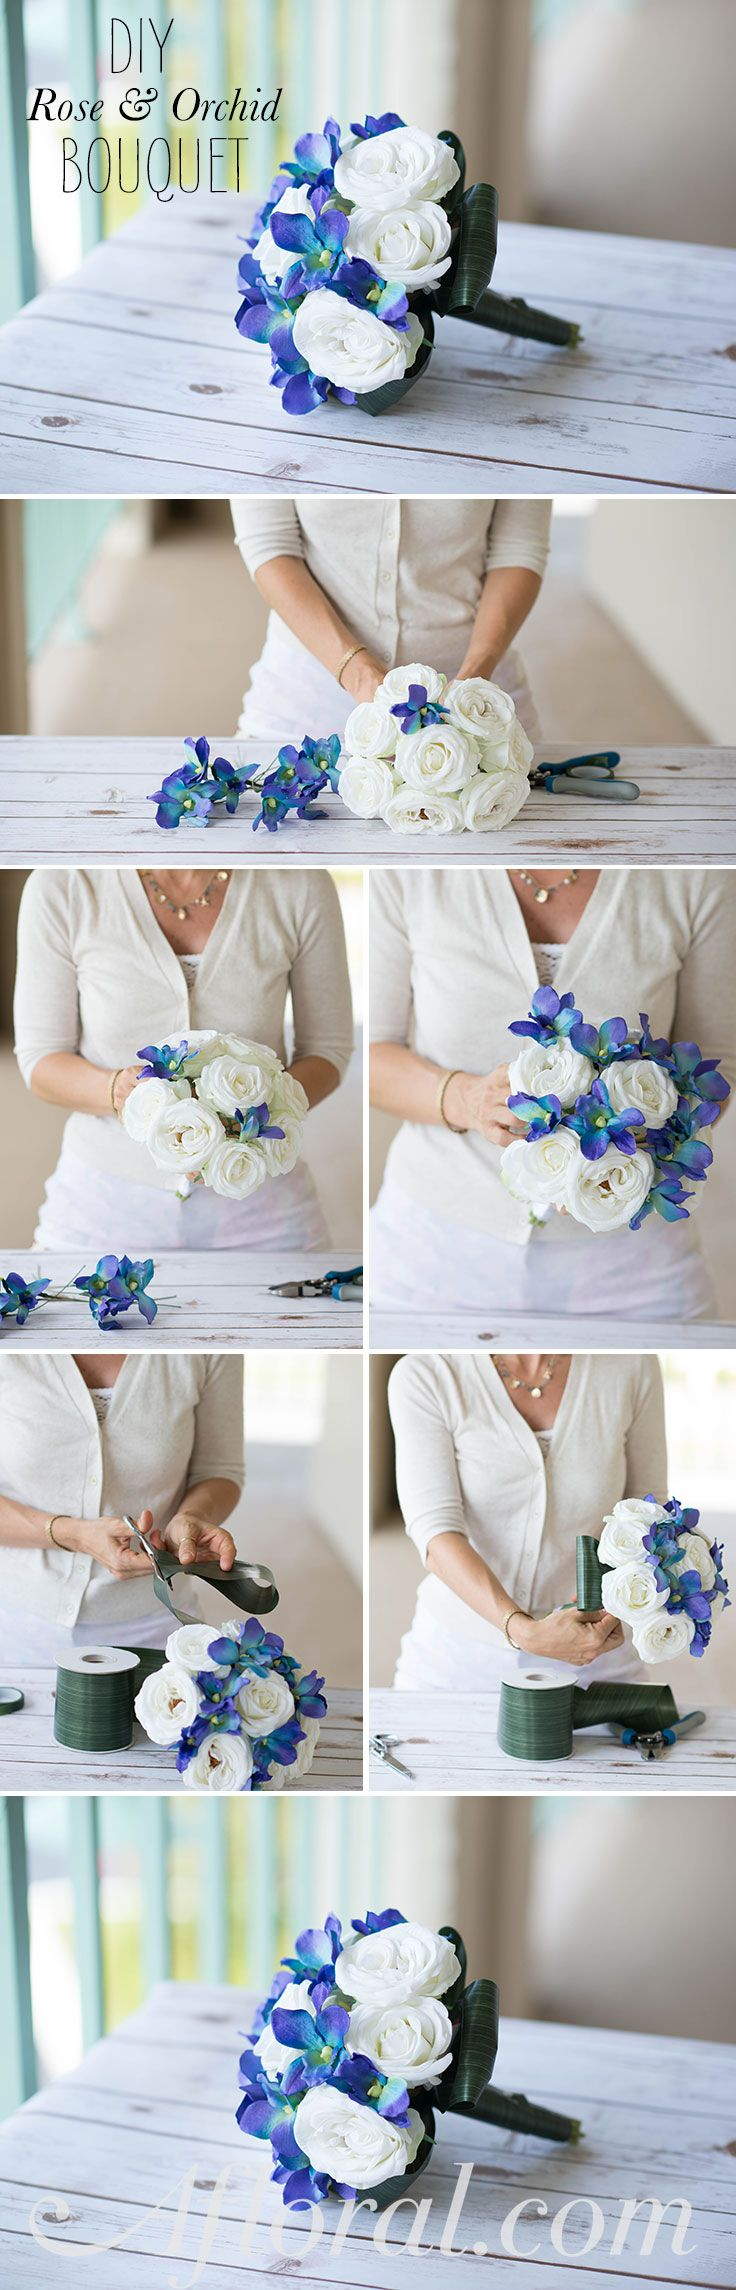 187 best wedding ideas images on pinterest wedding ideas diy bridal bouquet create your own wedding bouquets for less than 40 with premade bouquets junglespirit Choice Image